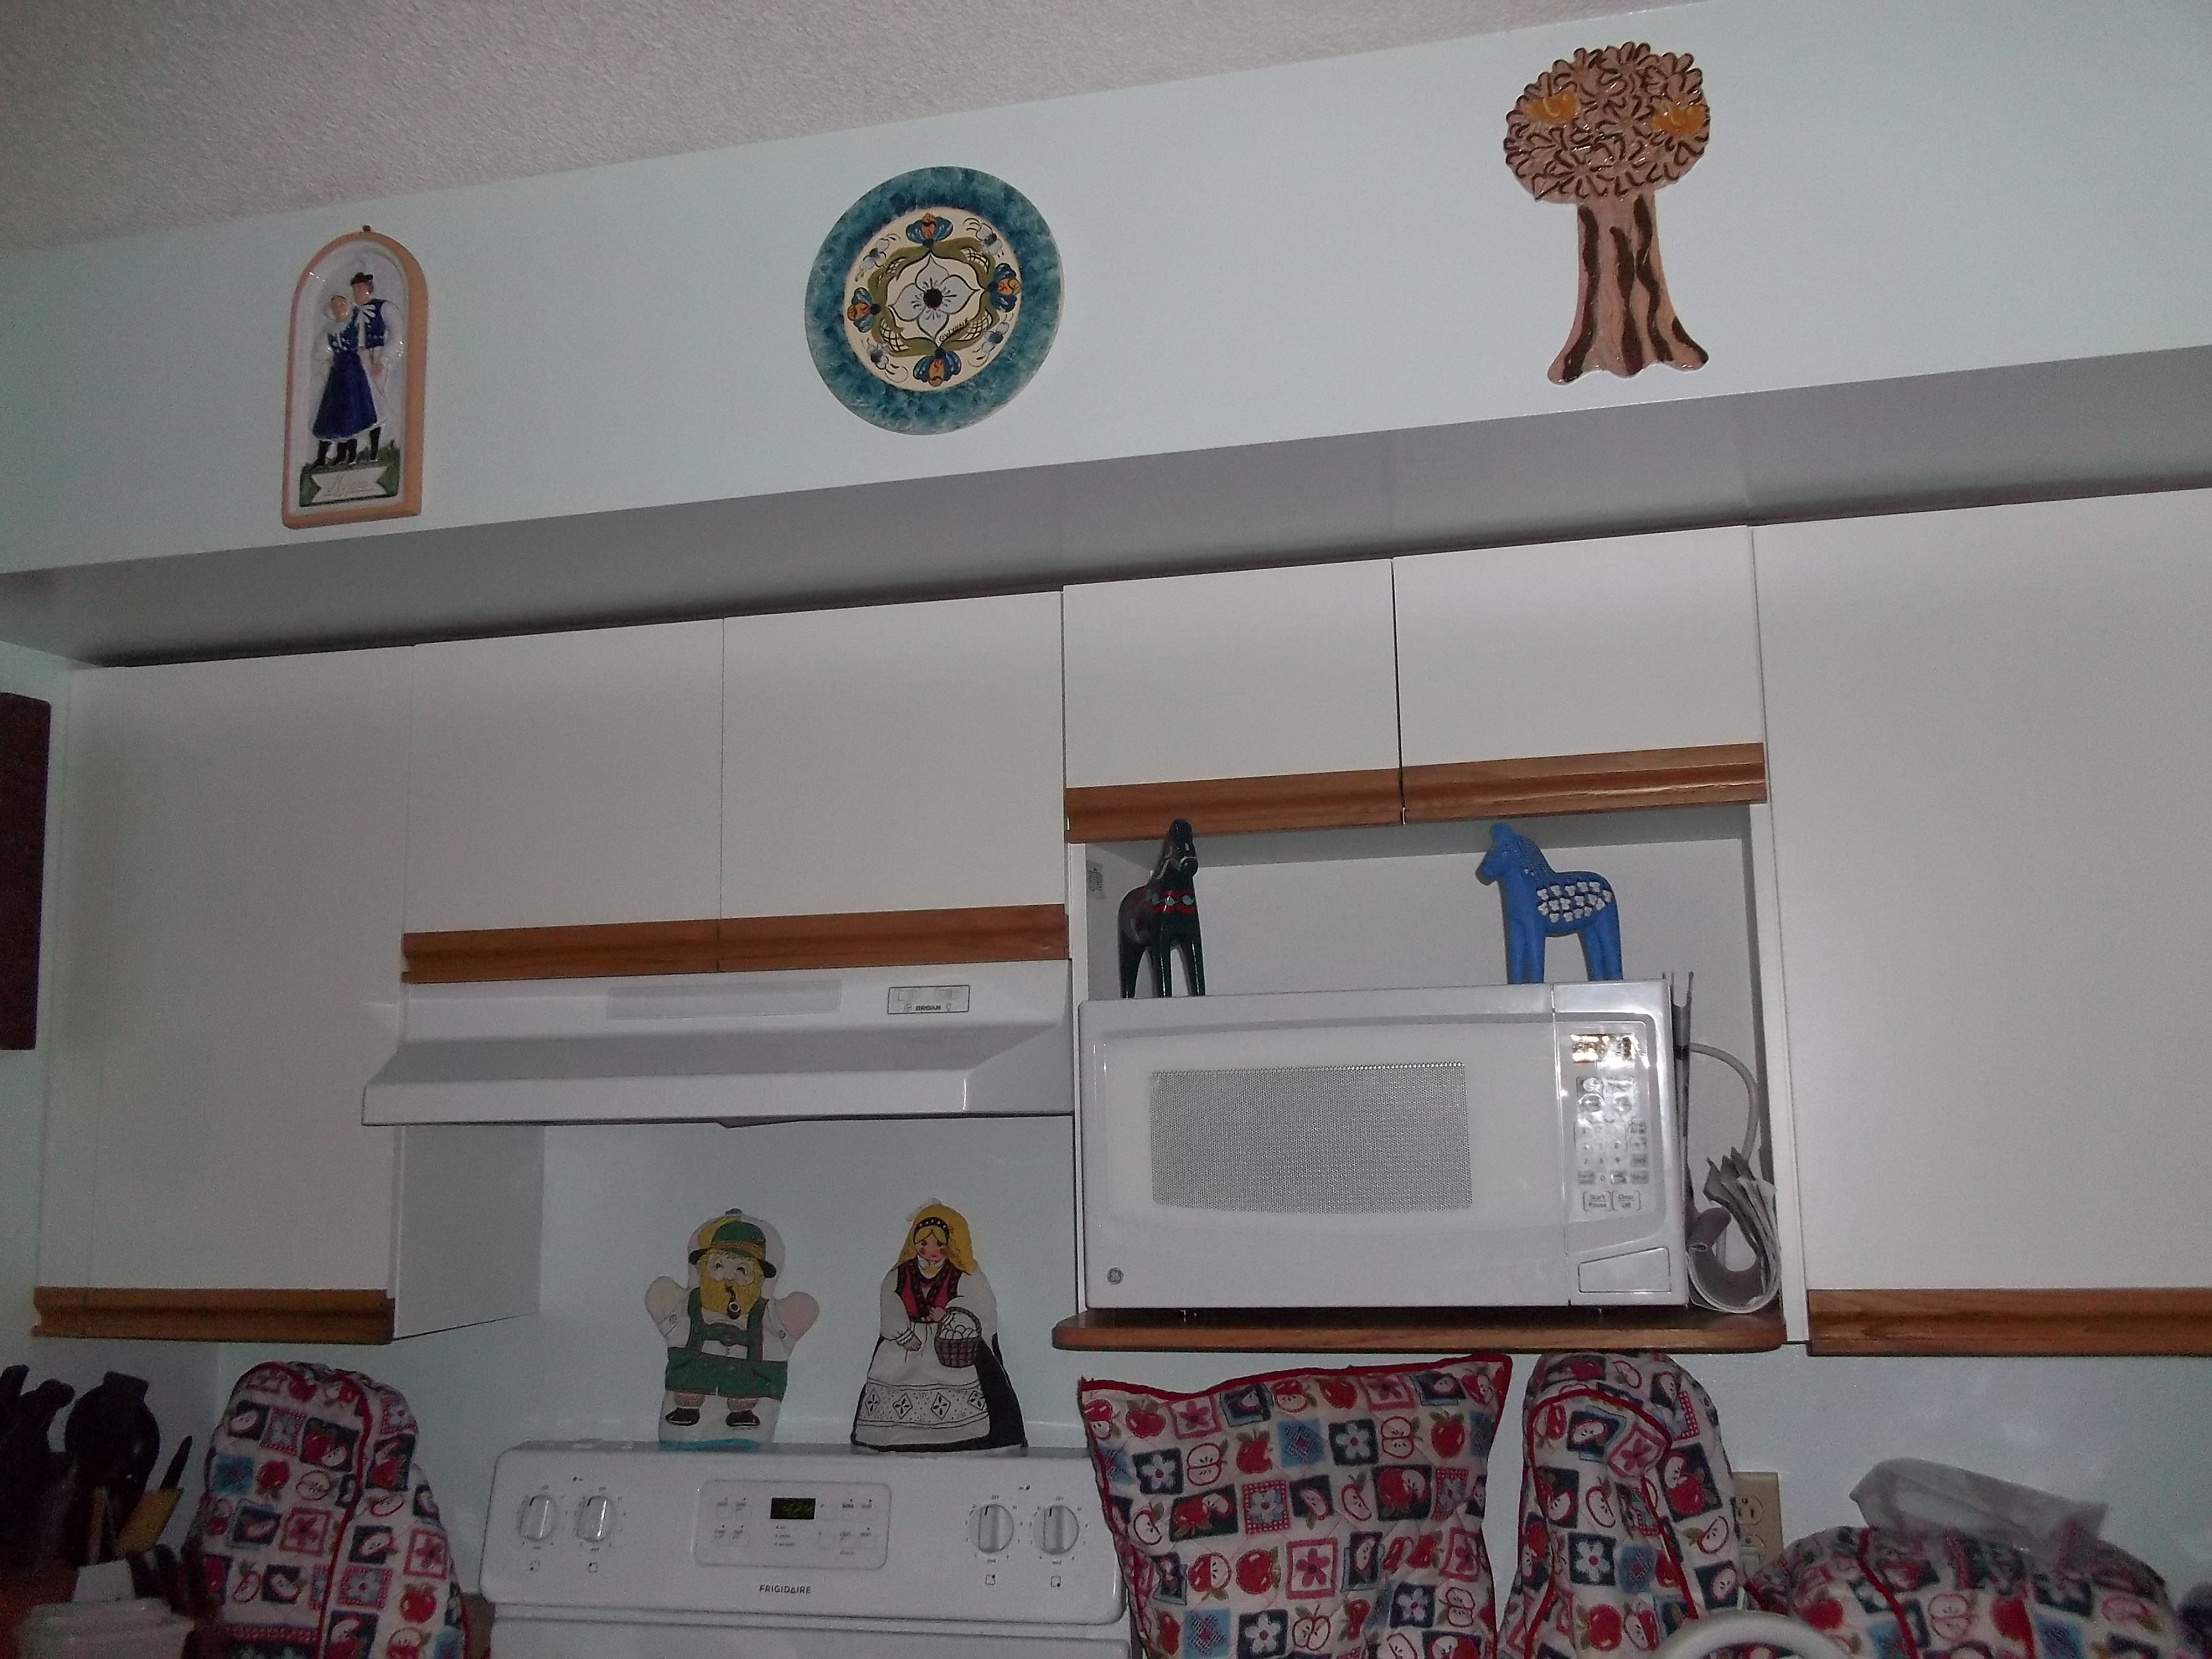 Kitchen-Slovakian, Norwegian and German Plaques, Swedish Dalarna Hesten, German and Norwegian doll pot holders